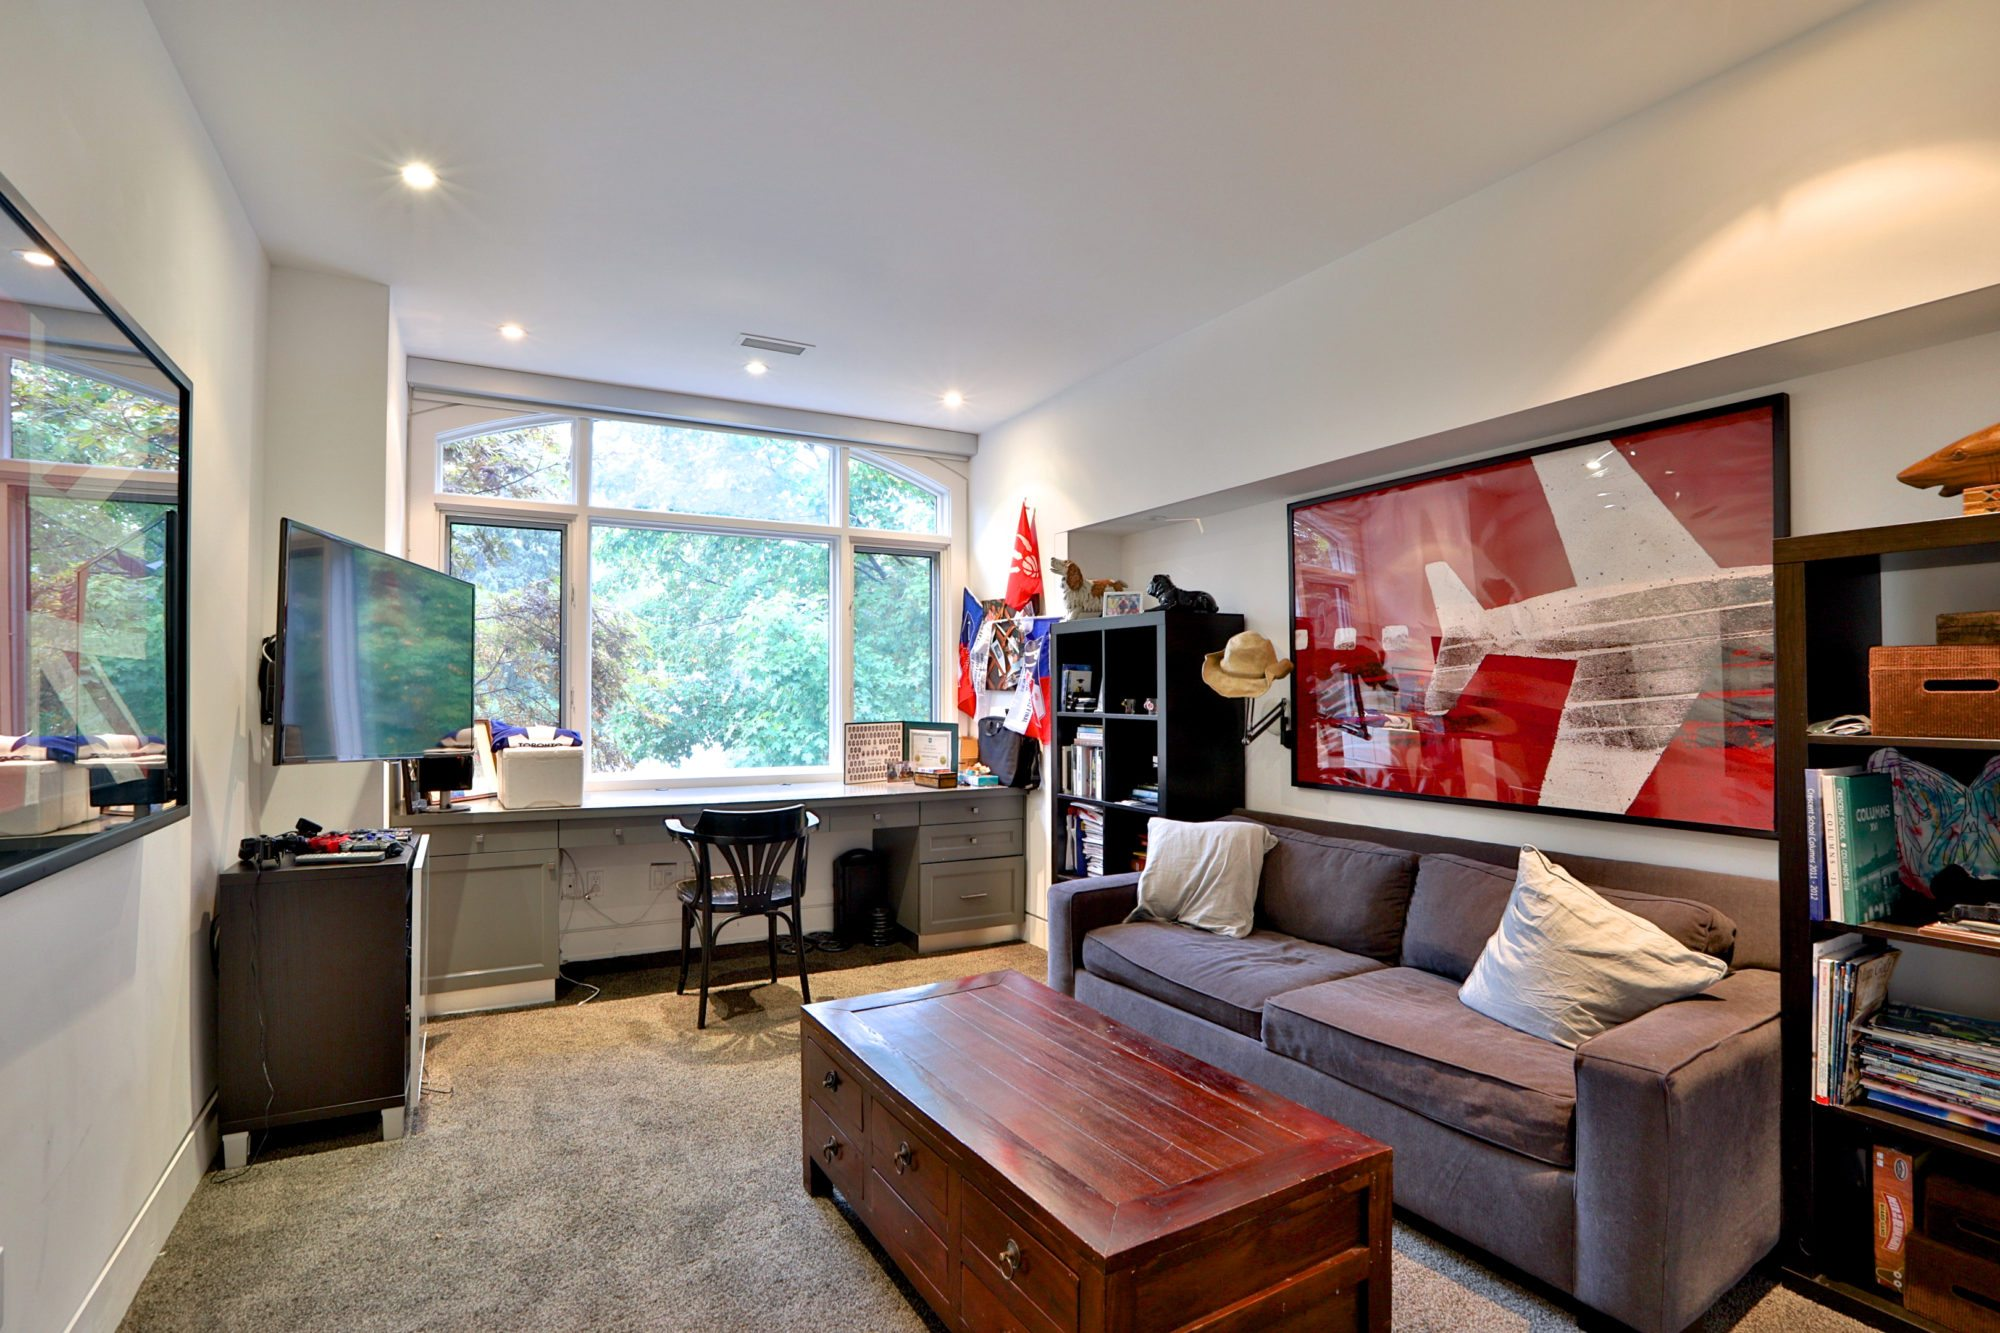 toronto-house-for-sale-70-blyth-hill-road-9